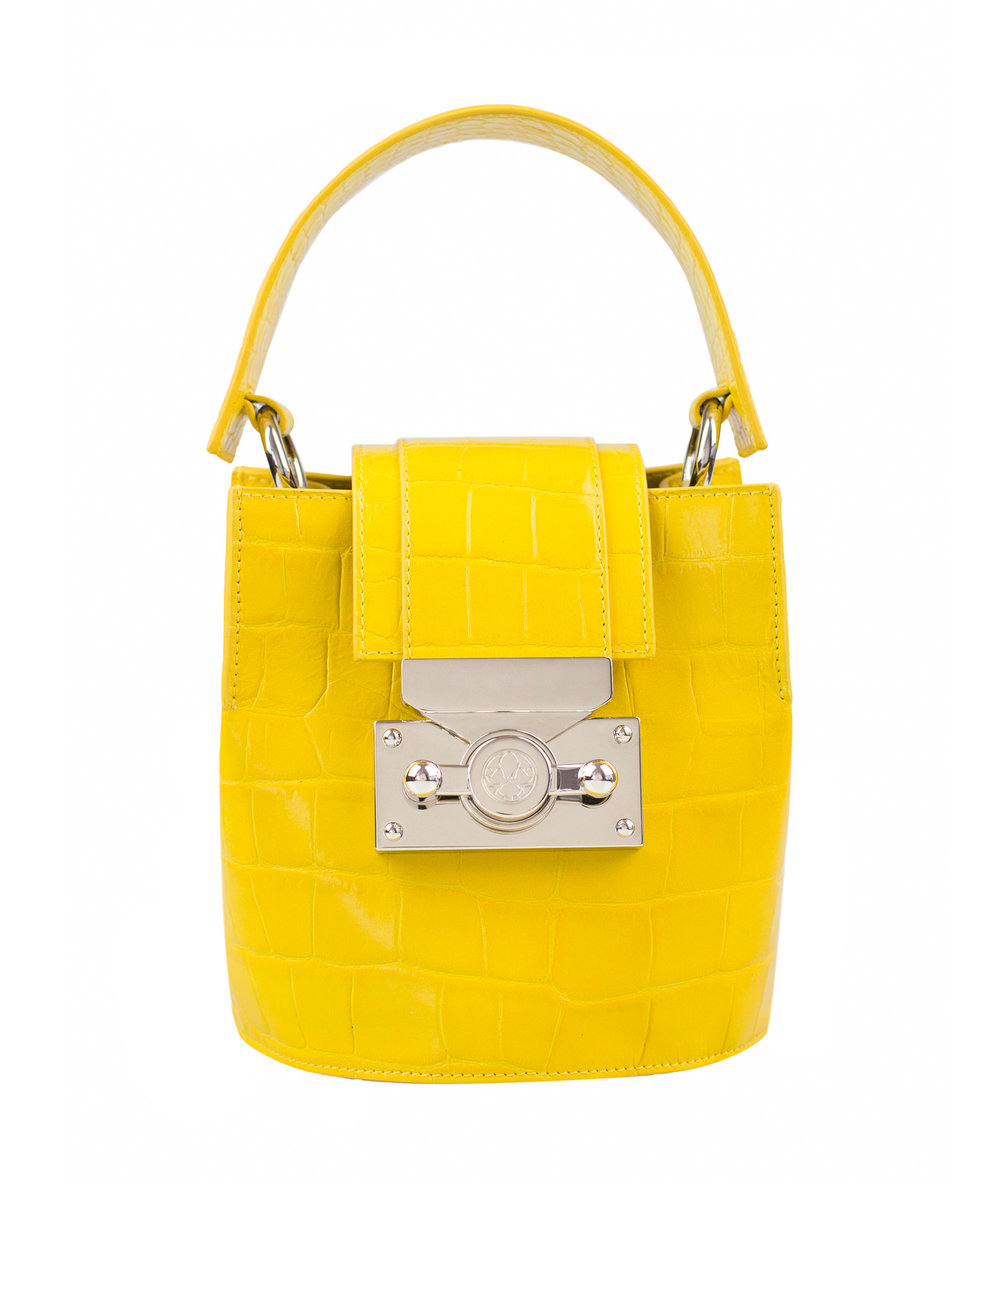 BUCKET_SS18_YELLOW_CROC_S_FRONT2.jpg